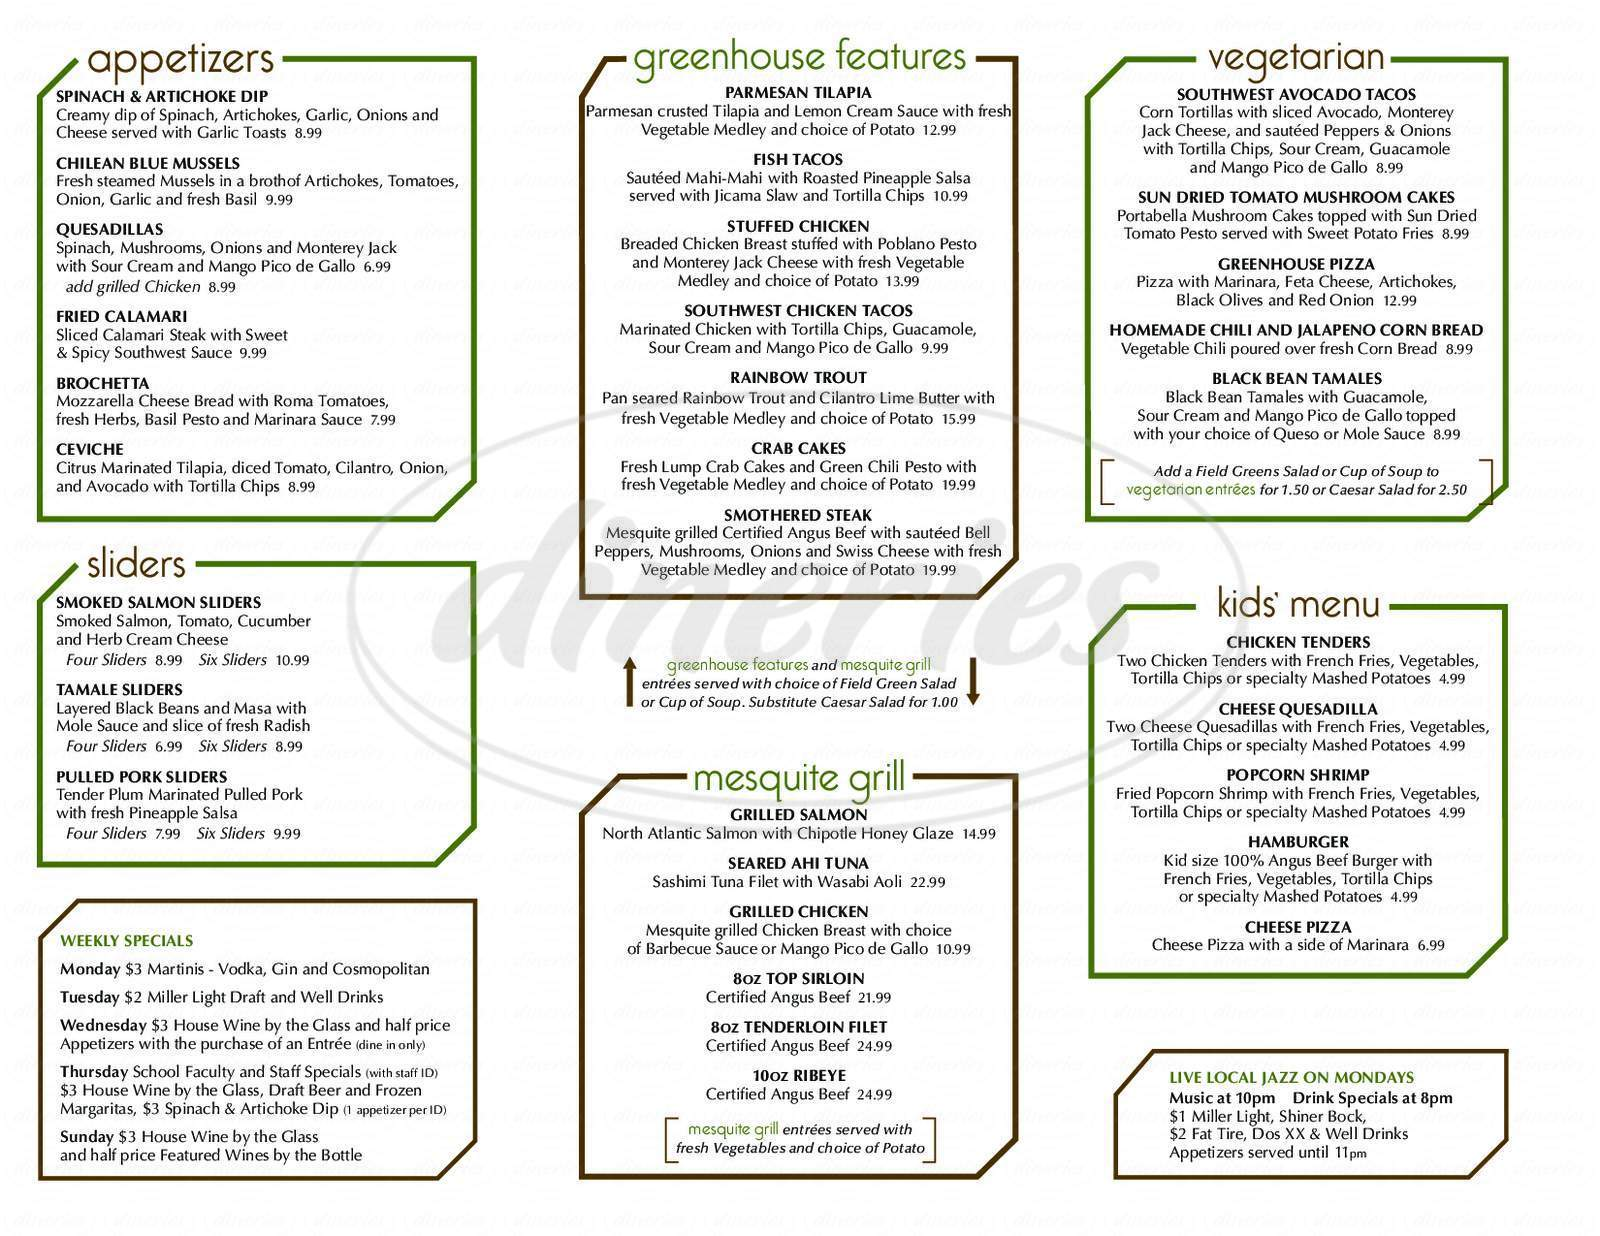 menu for Greenhouse Restaurant & Bar